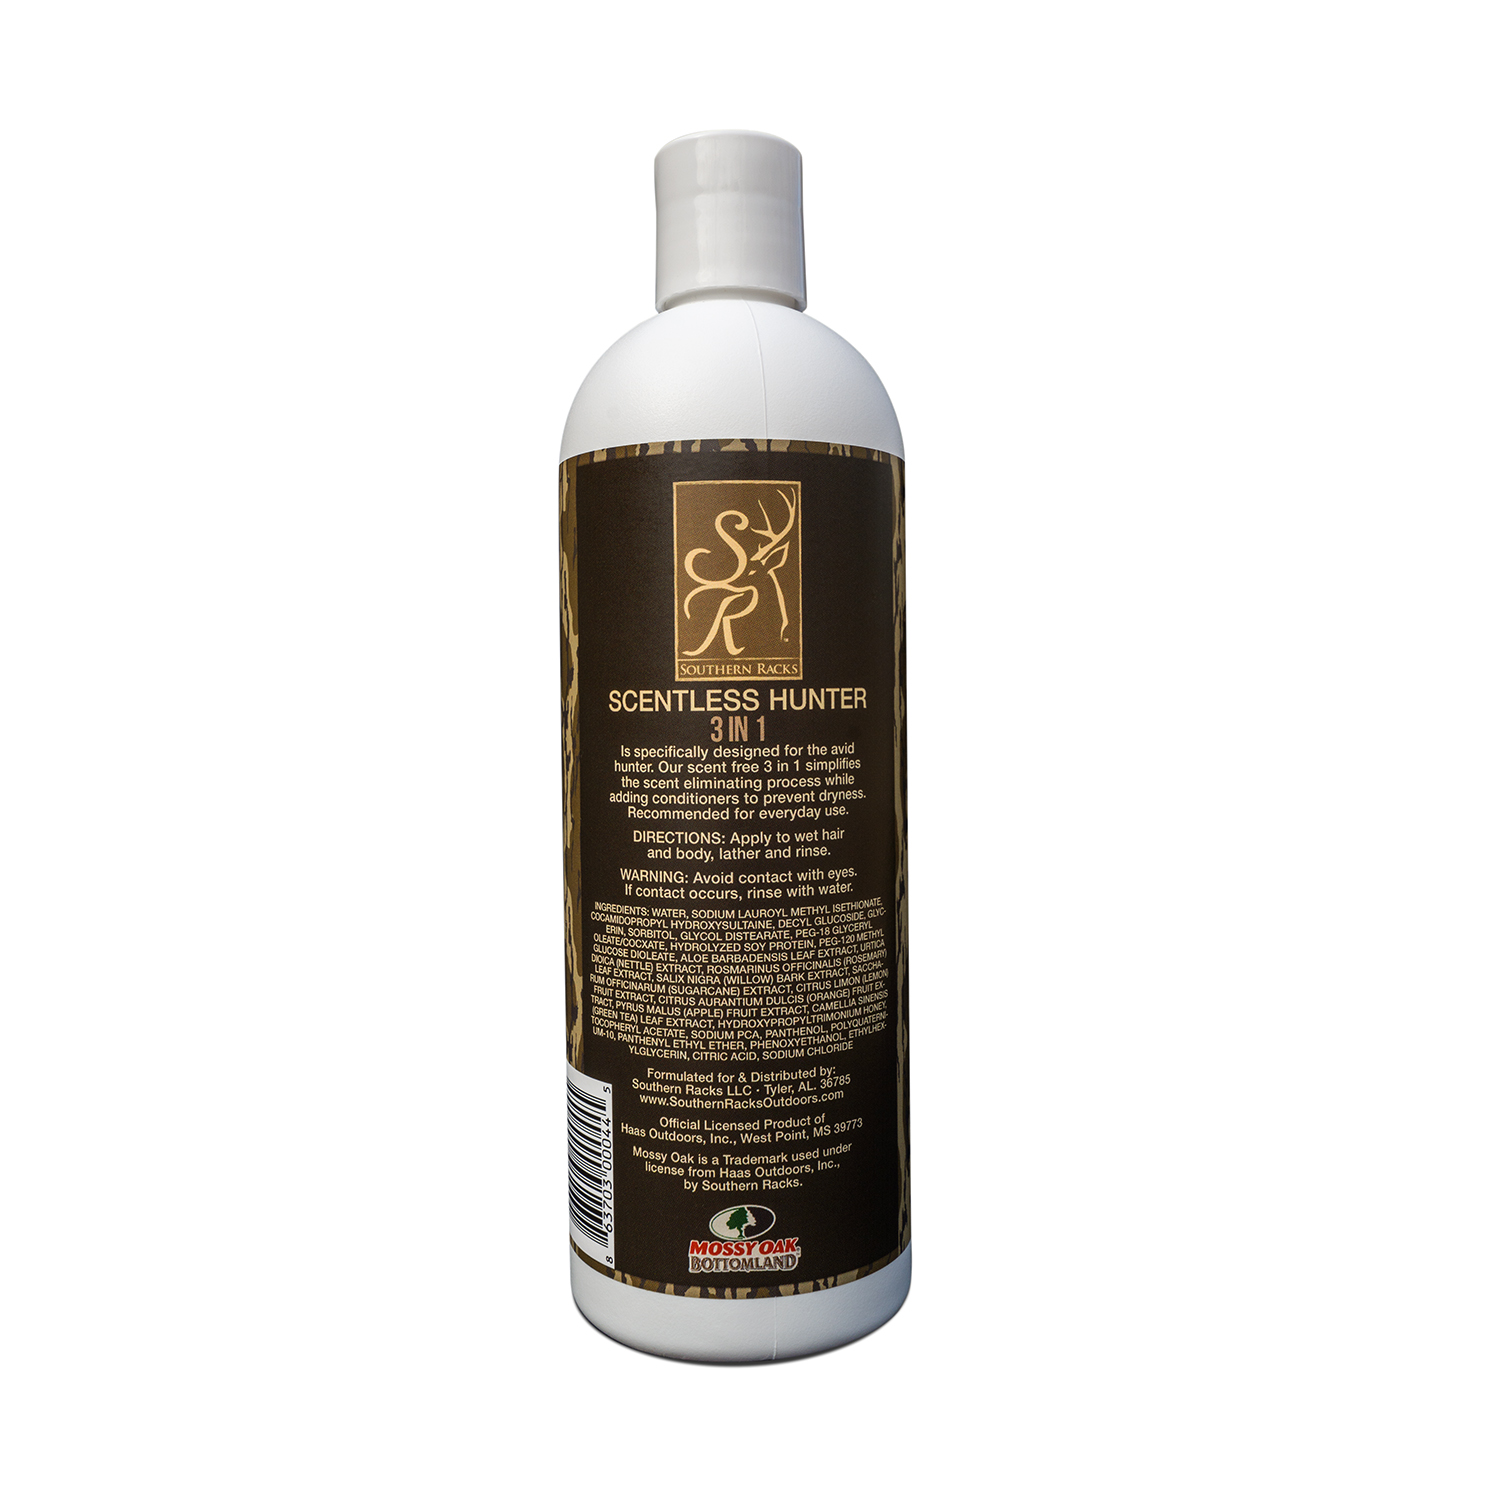 Scentless Hunter 3-in-1 Shampoo, Conditioner & Body Wash